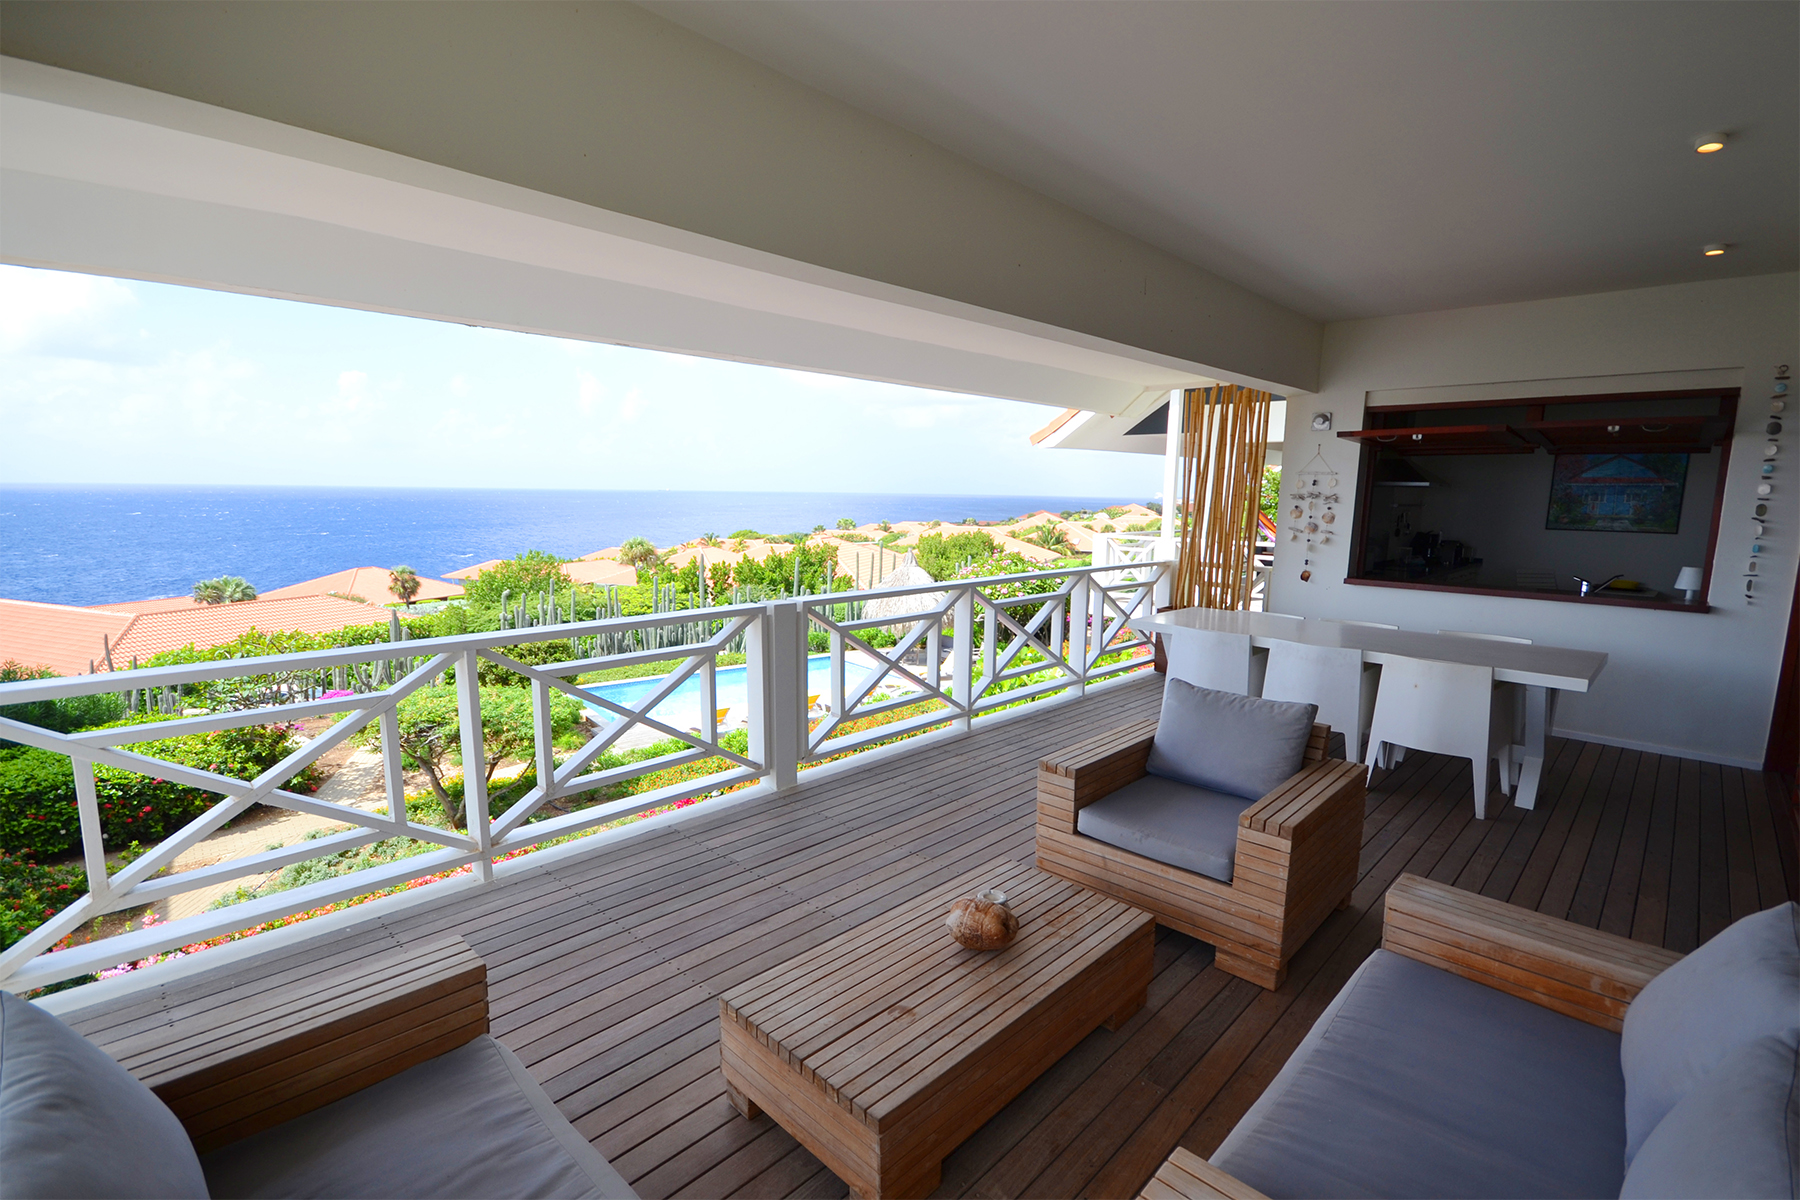 Additional photo for property listing at Boca Gentil Bayside 8 Other Cities In Curacao, Cities In Curacao Curacao